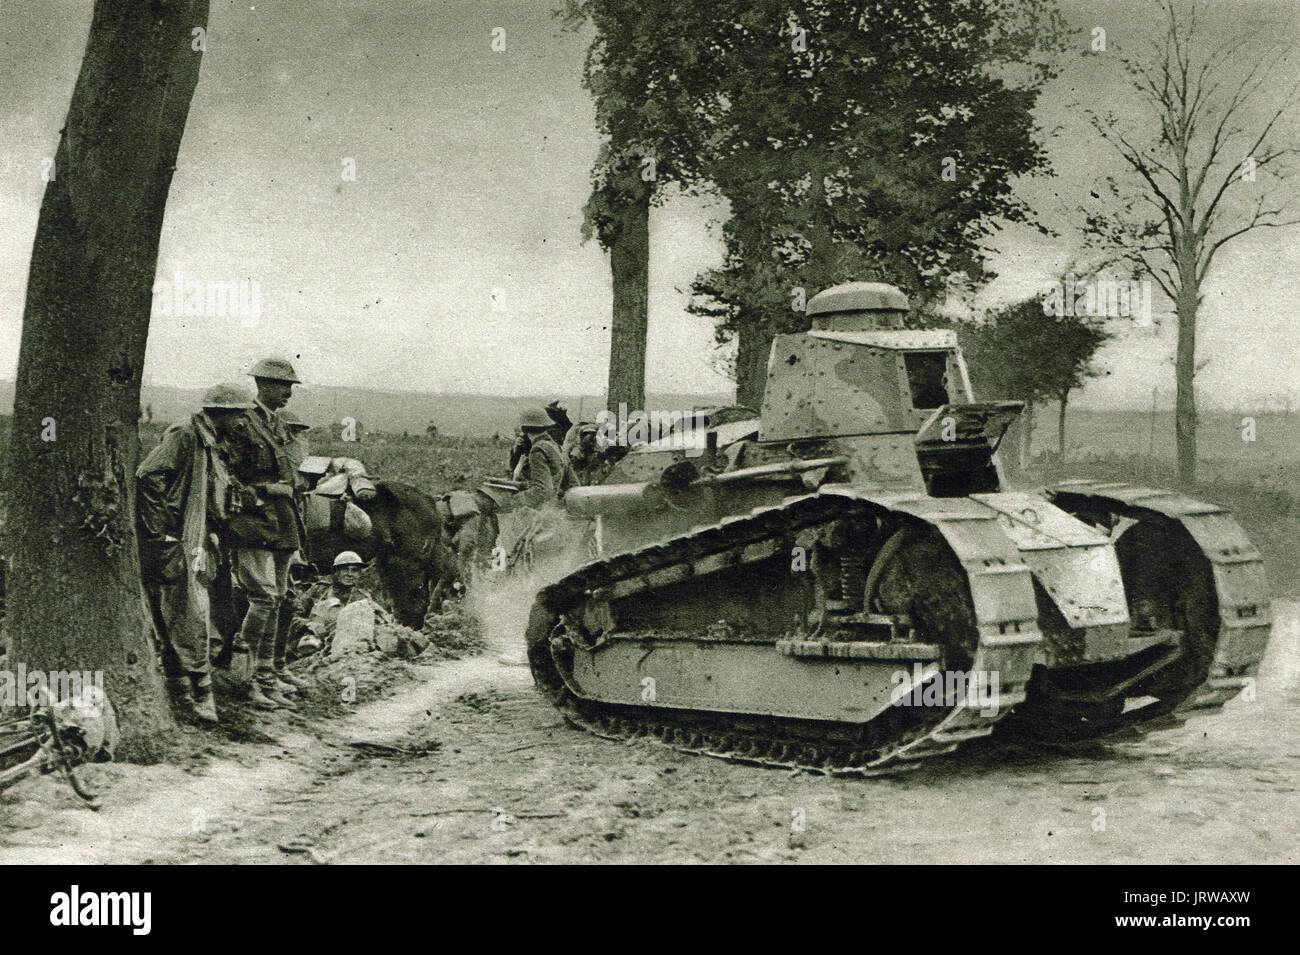 Whippet Tank setting off on reconnaissance mission - Stock Image